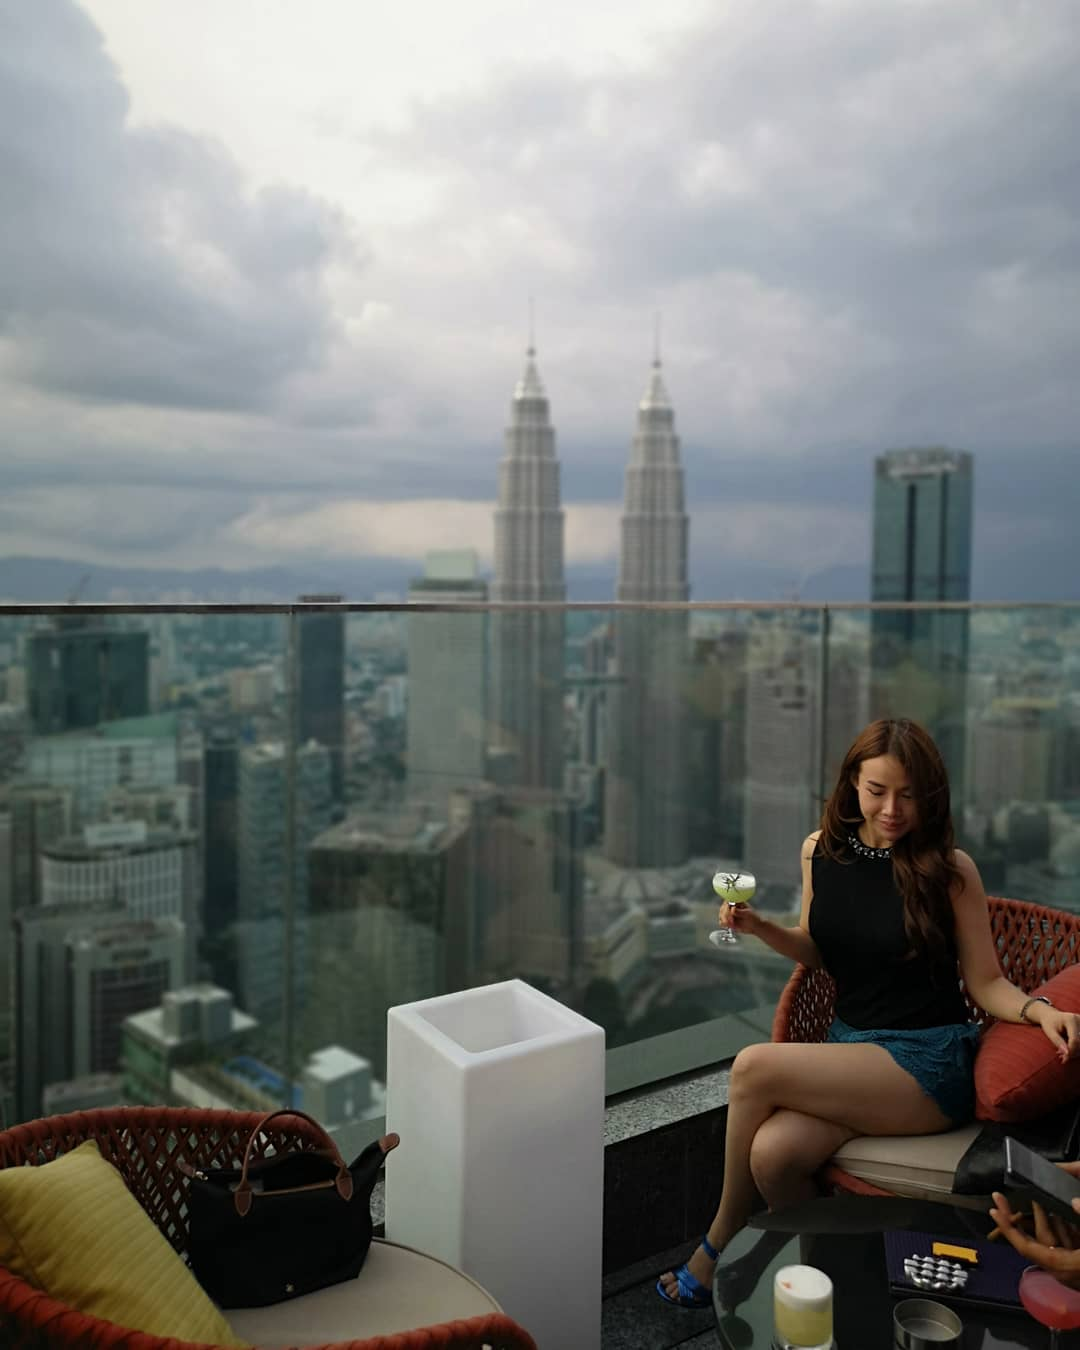 Vertigo Has The Best View Of The Petronas In Kl